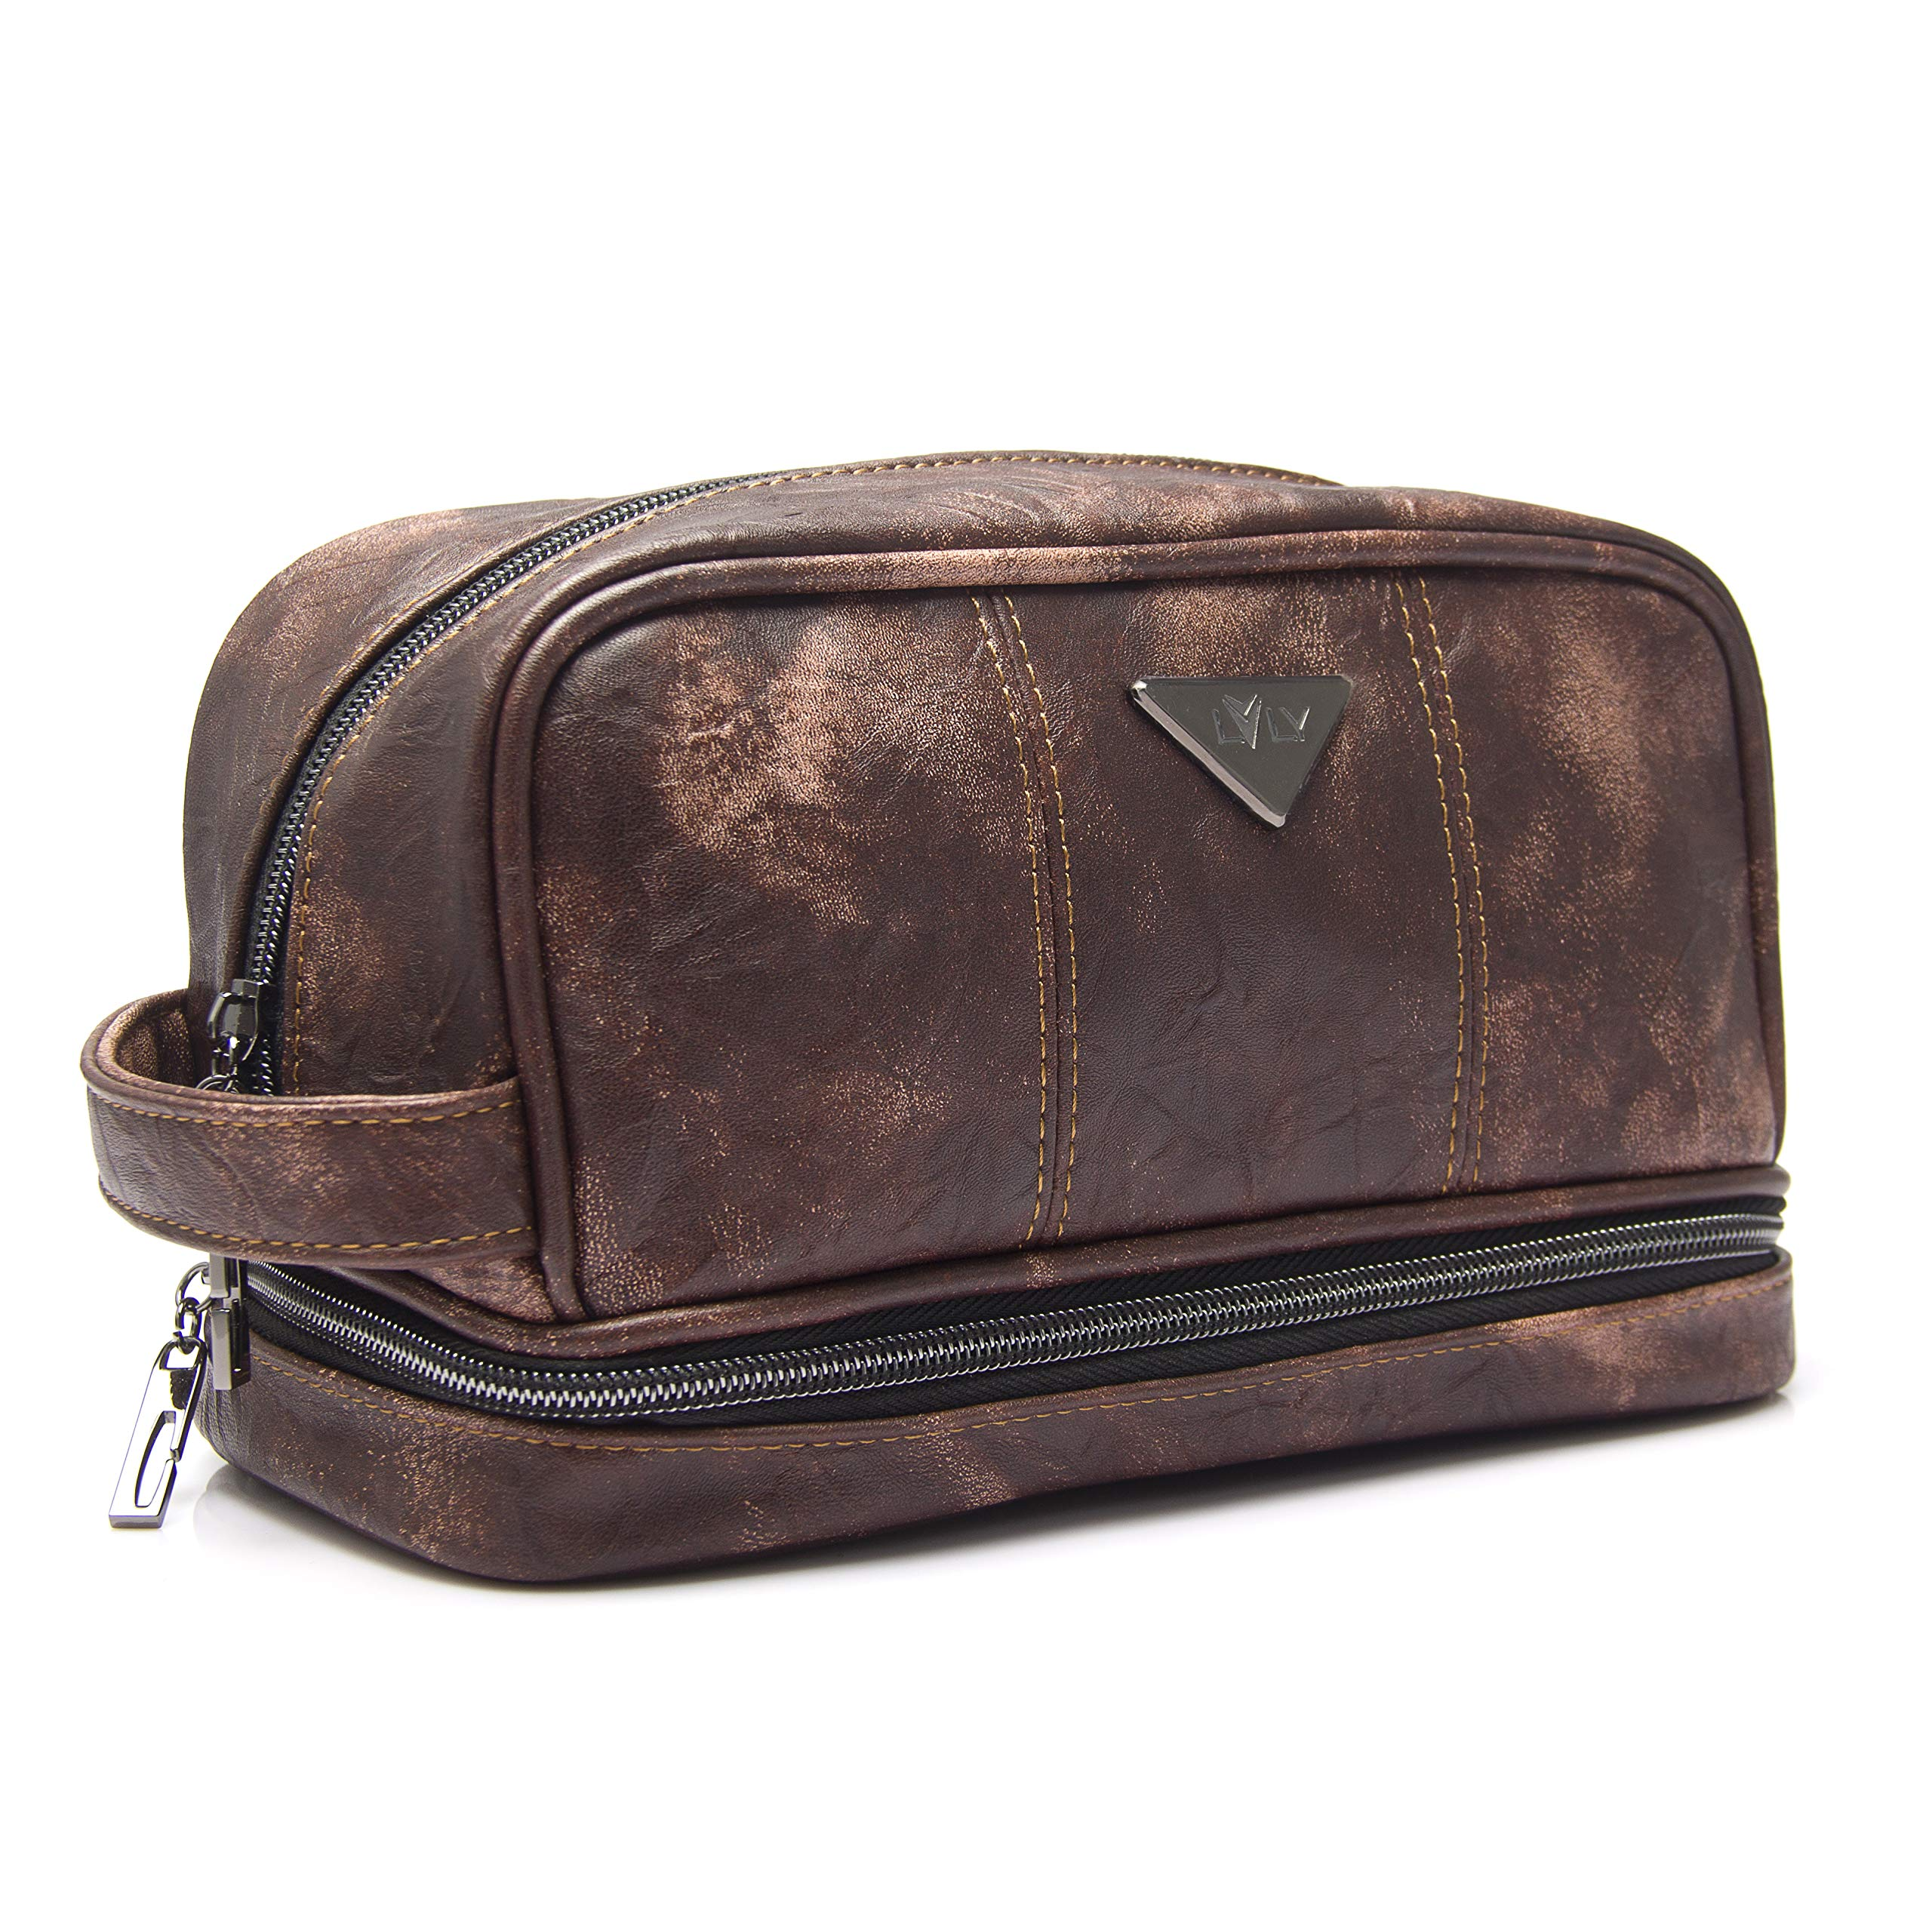 Toiletry Travel Bag for Men - Large Leather Dopp Kit - Mens Toiletries Bathroom Organizer by LVLY (Brown)